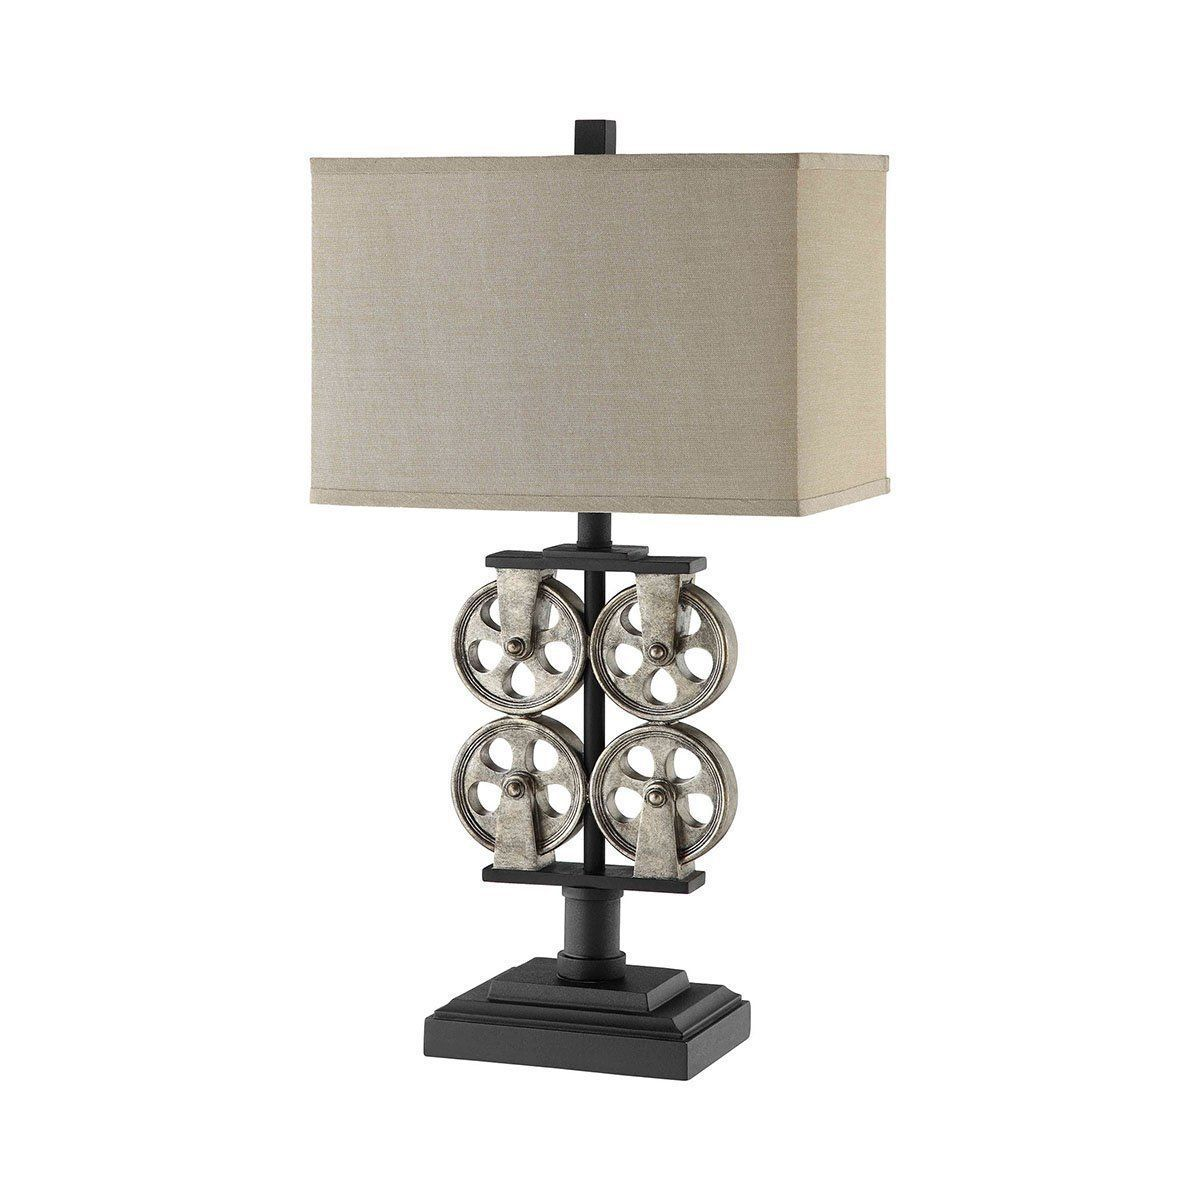 Whitmore Hall Table Lamp By Stein World